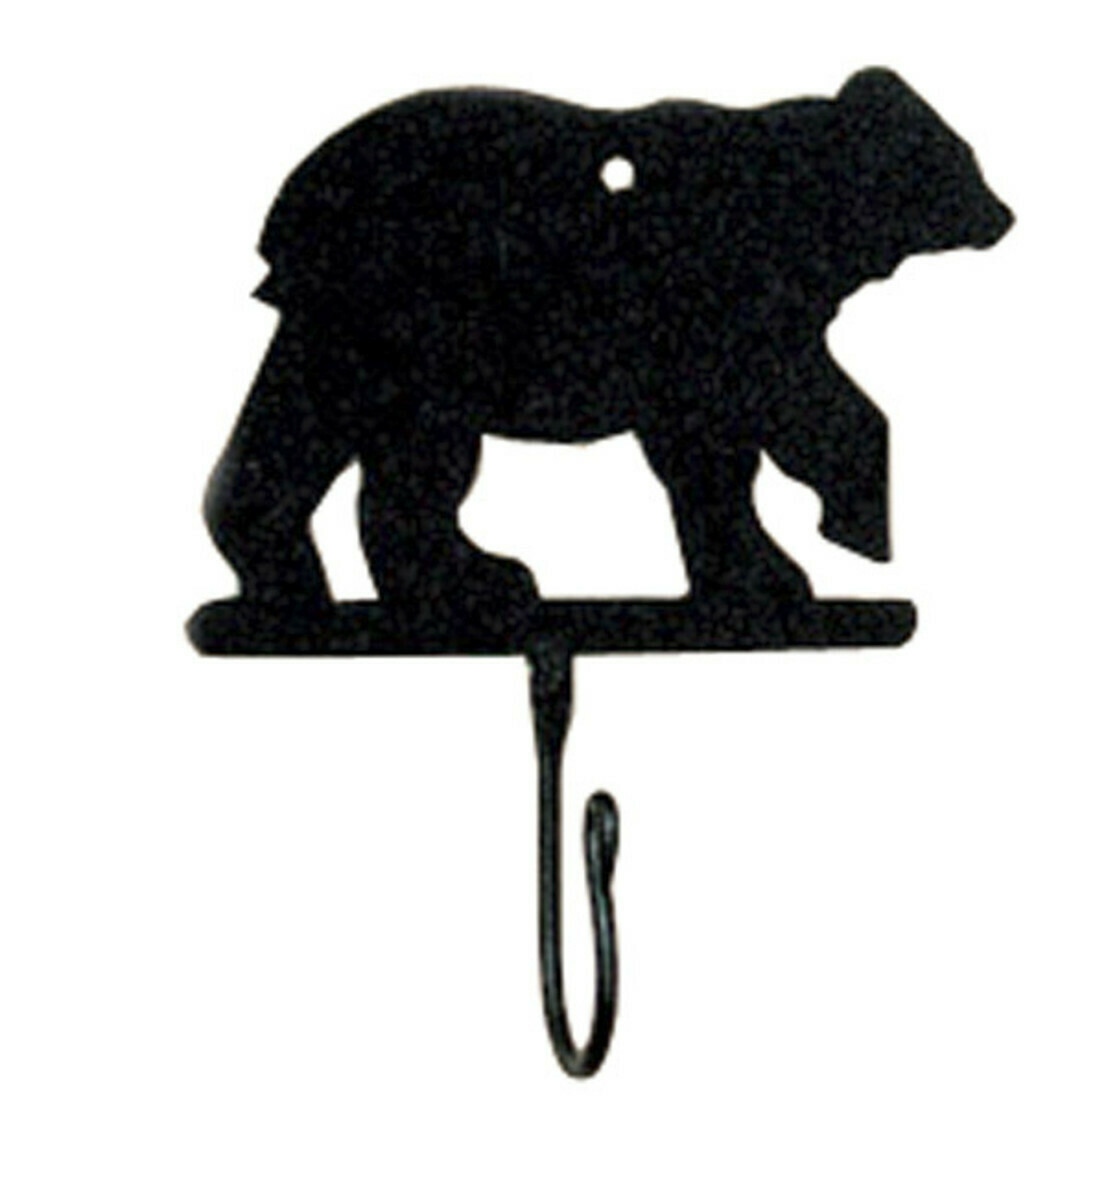 Bear Iron Hook